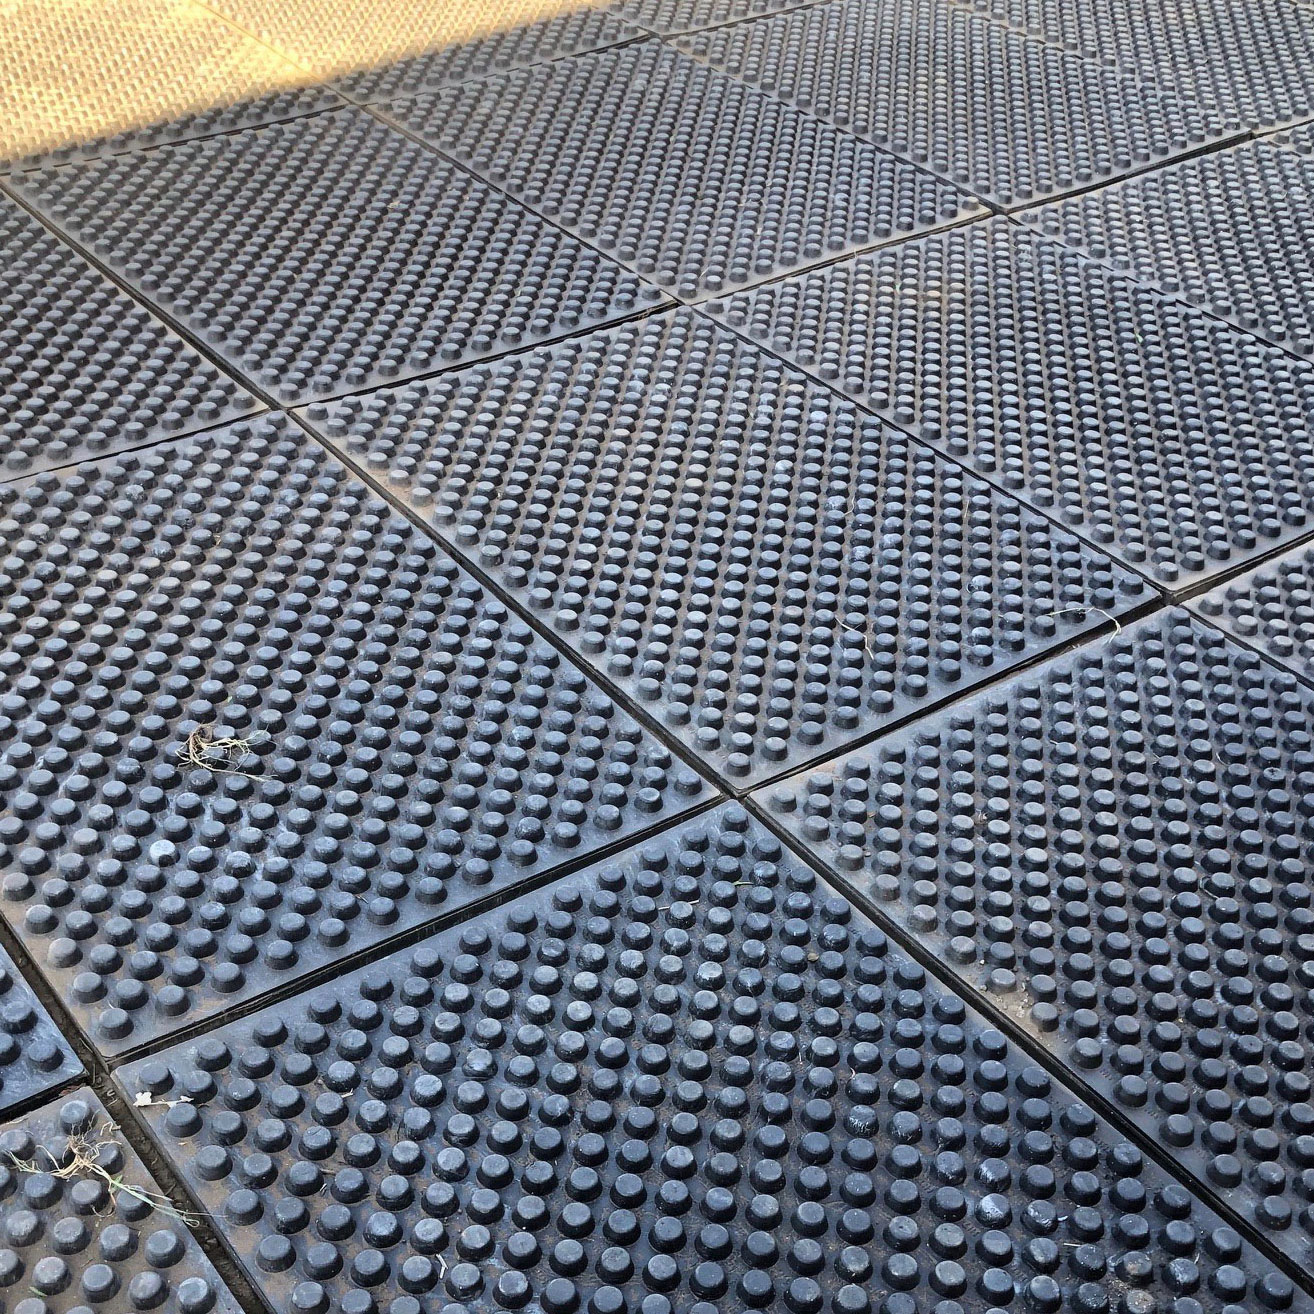 Base mats in turnout with sand